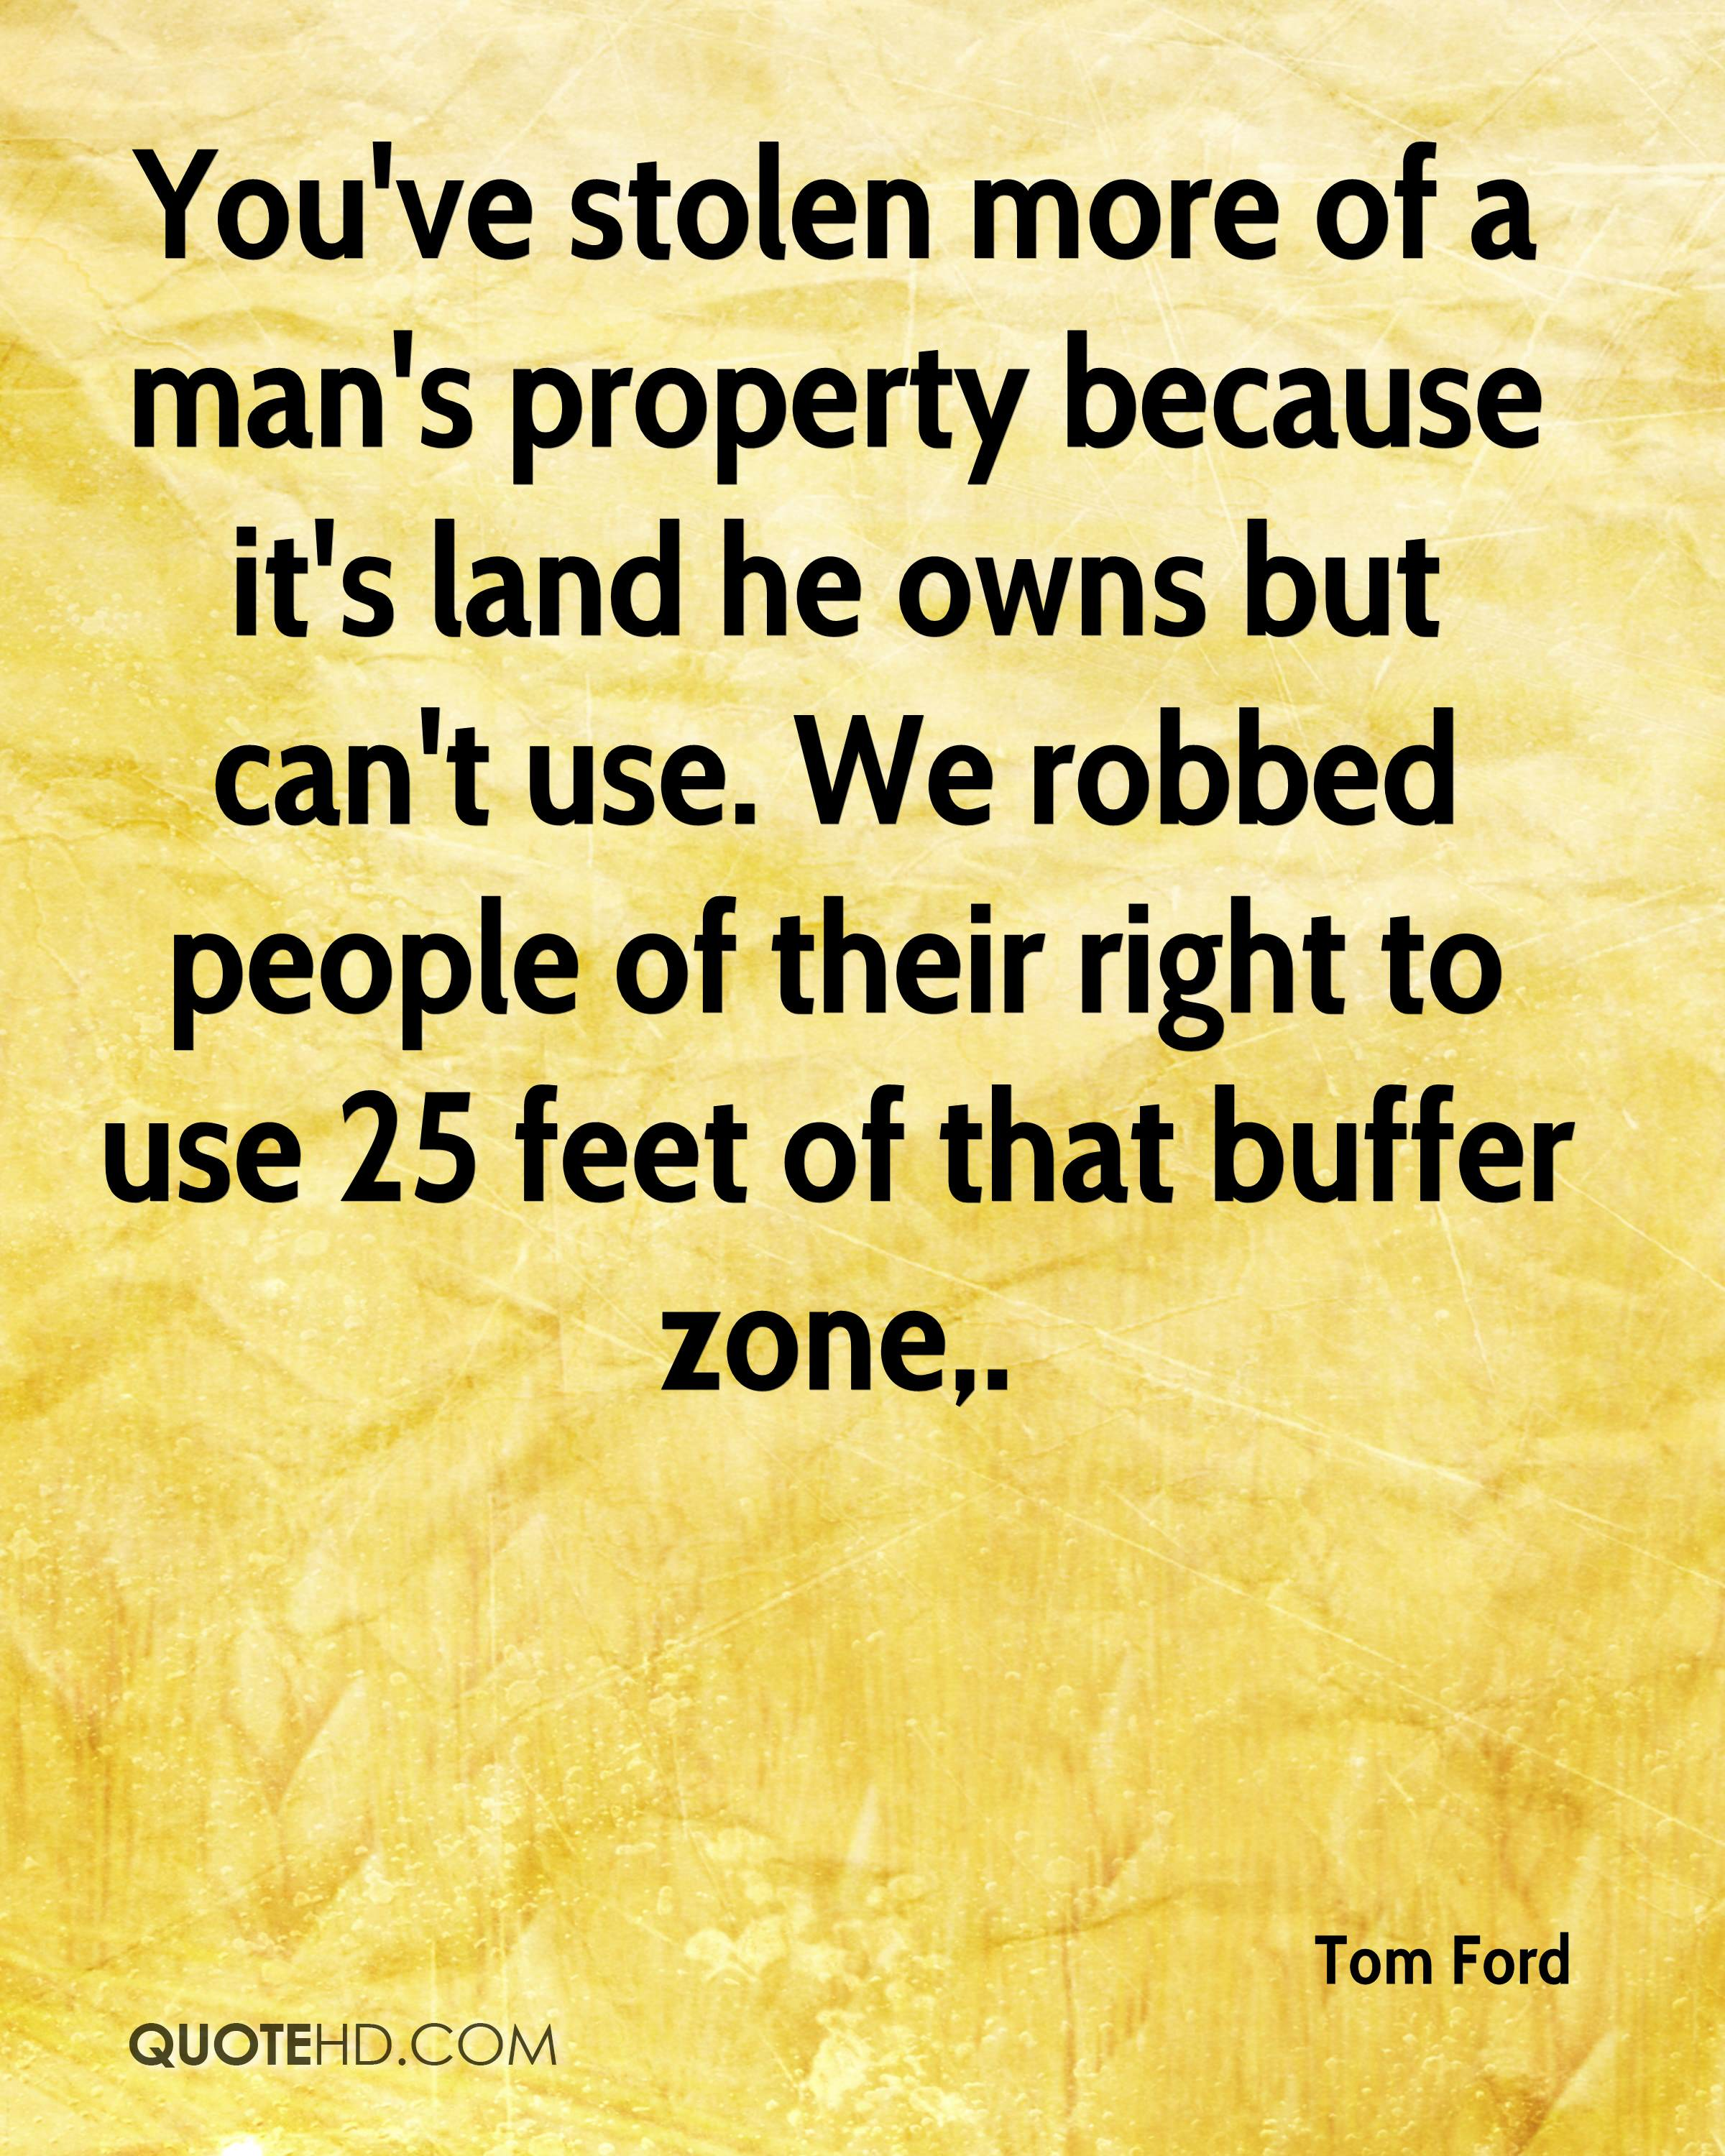 You've stolen more of a man's property because it's land he owns but can't use. We robbed people of their right to use 25 feet of that buffer zone.